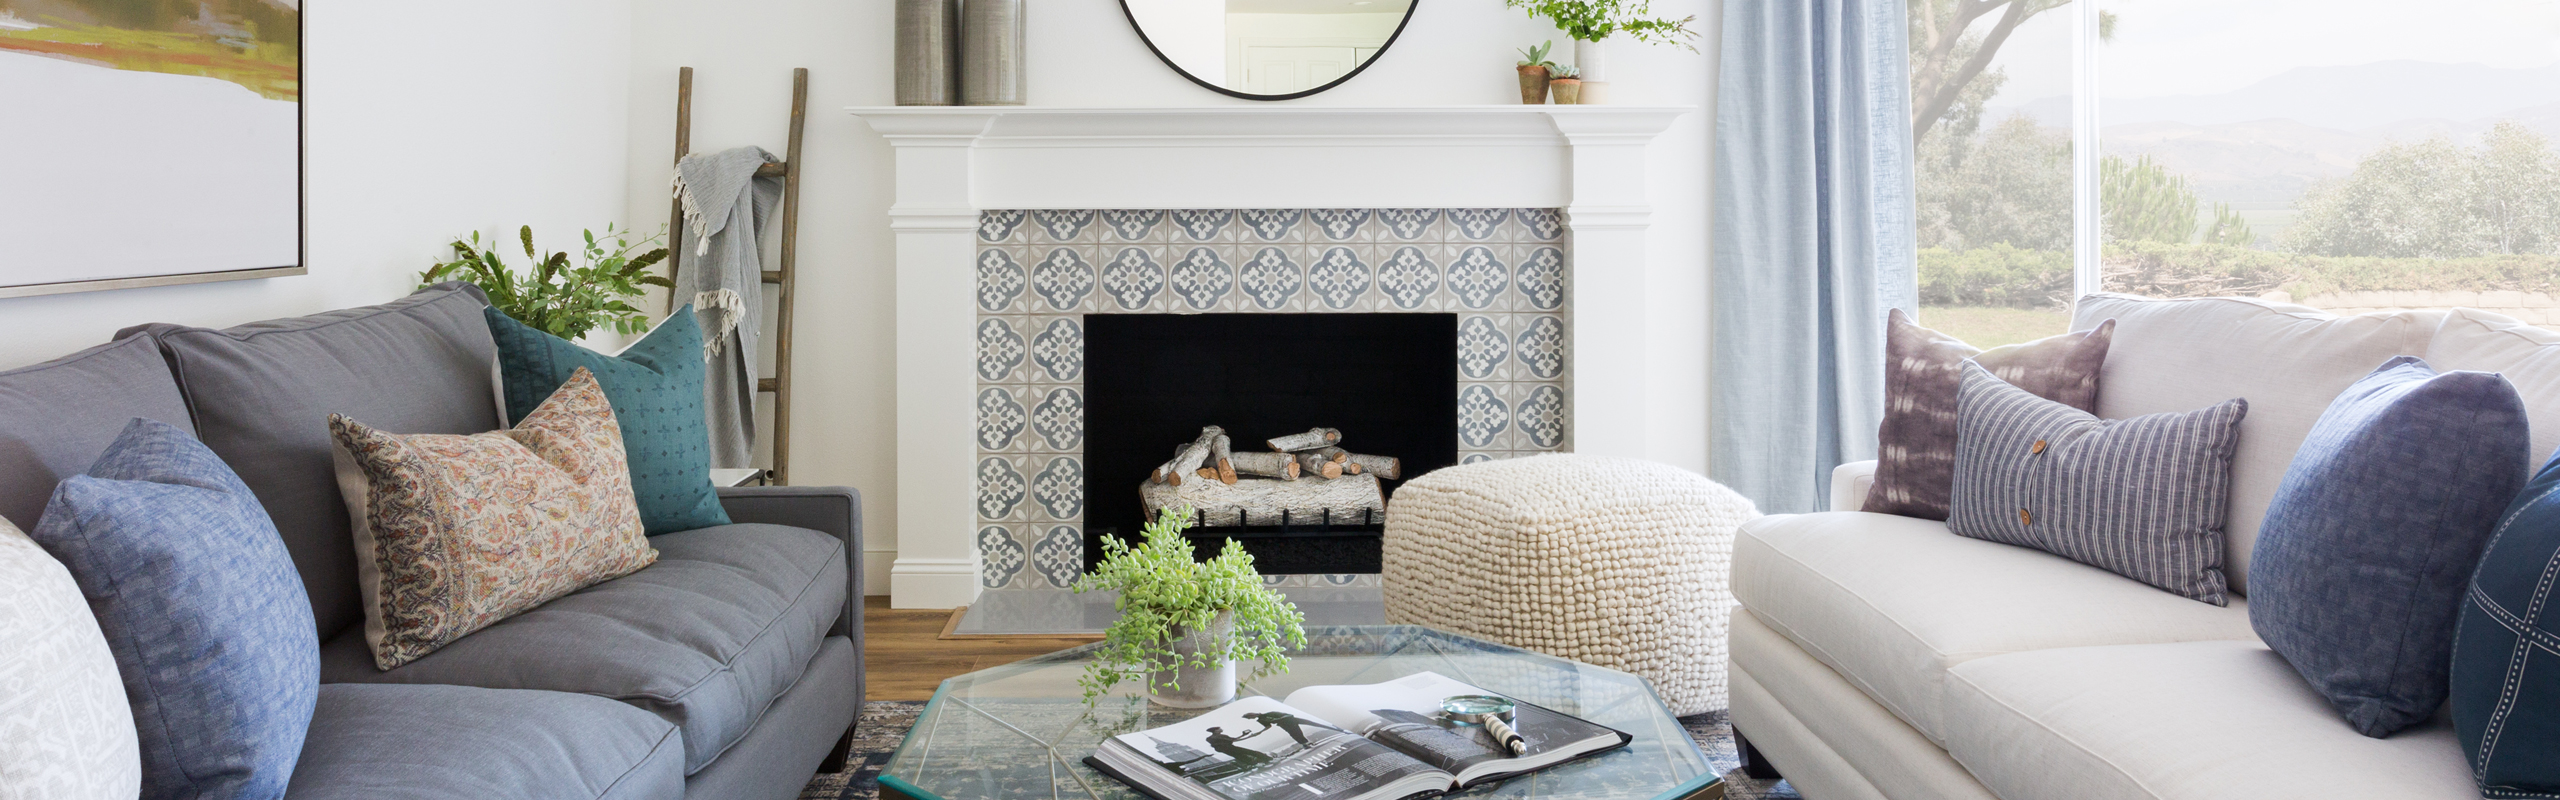 Hot Fireplace Tile Trends - Enchante porcelain tile in Charm